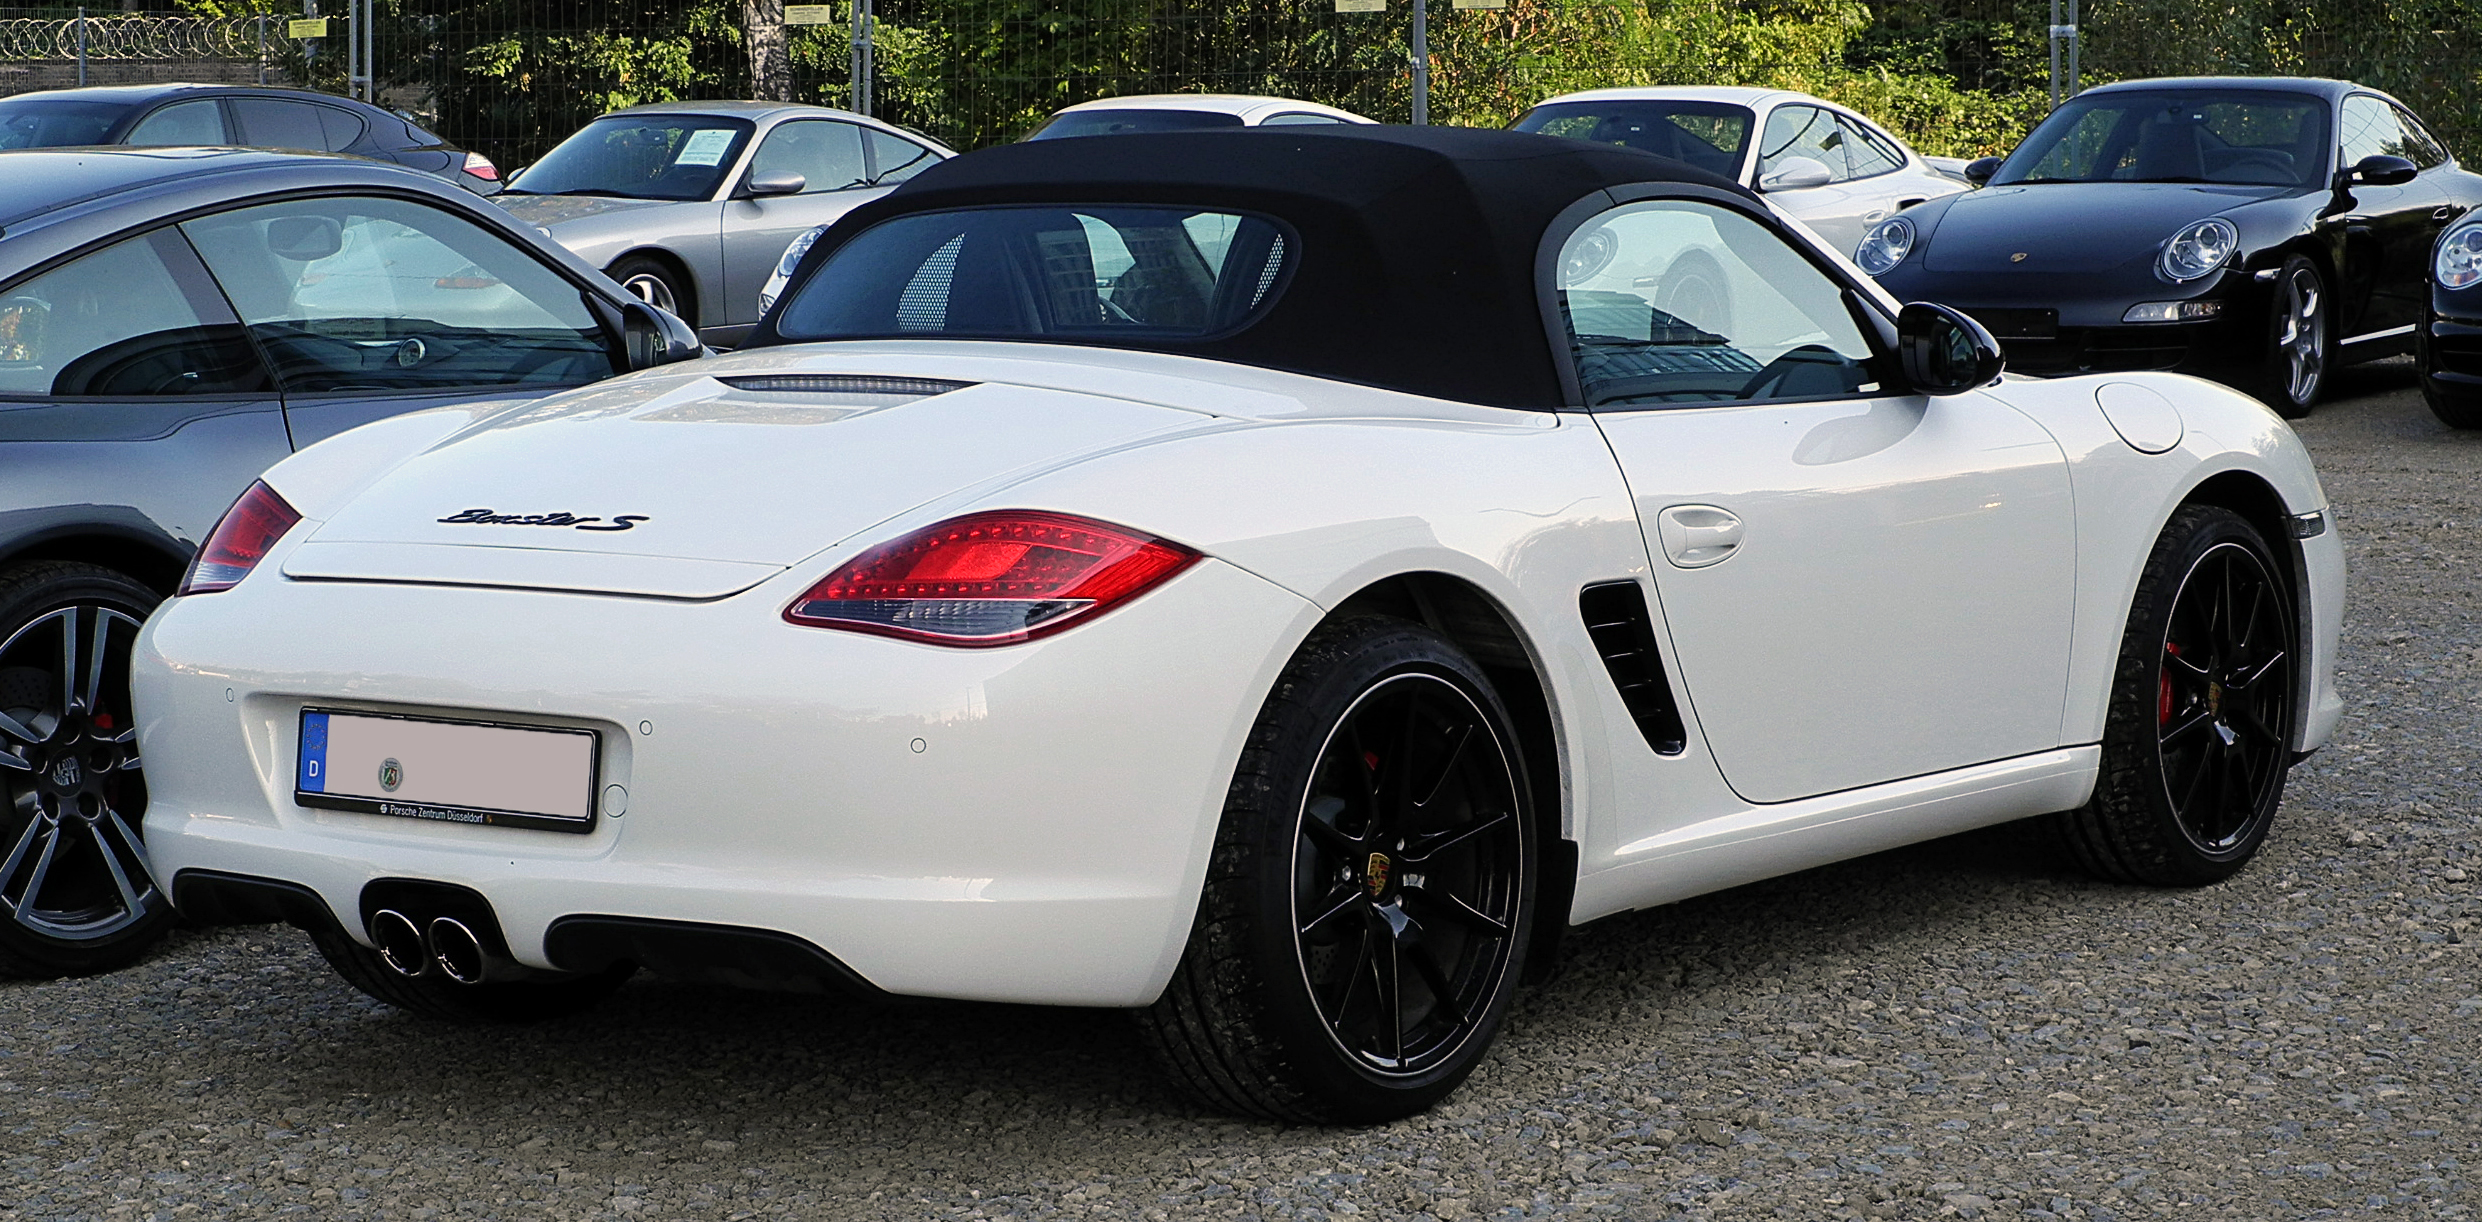 file porsche boxster s 987 facelift heckansicht 25 september 2011 d wikipedia. Black Bedroom Furniture Sets. Home Design Ideas